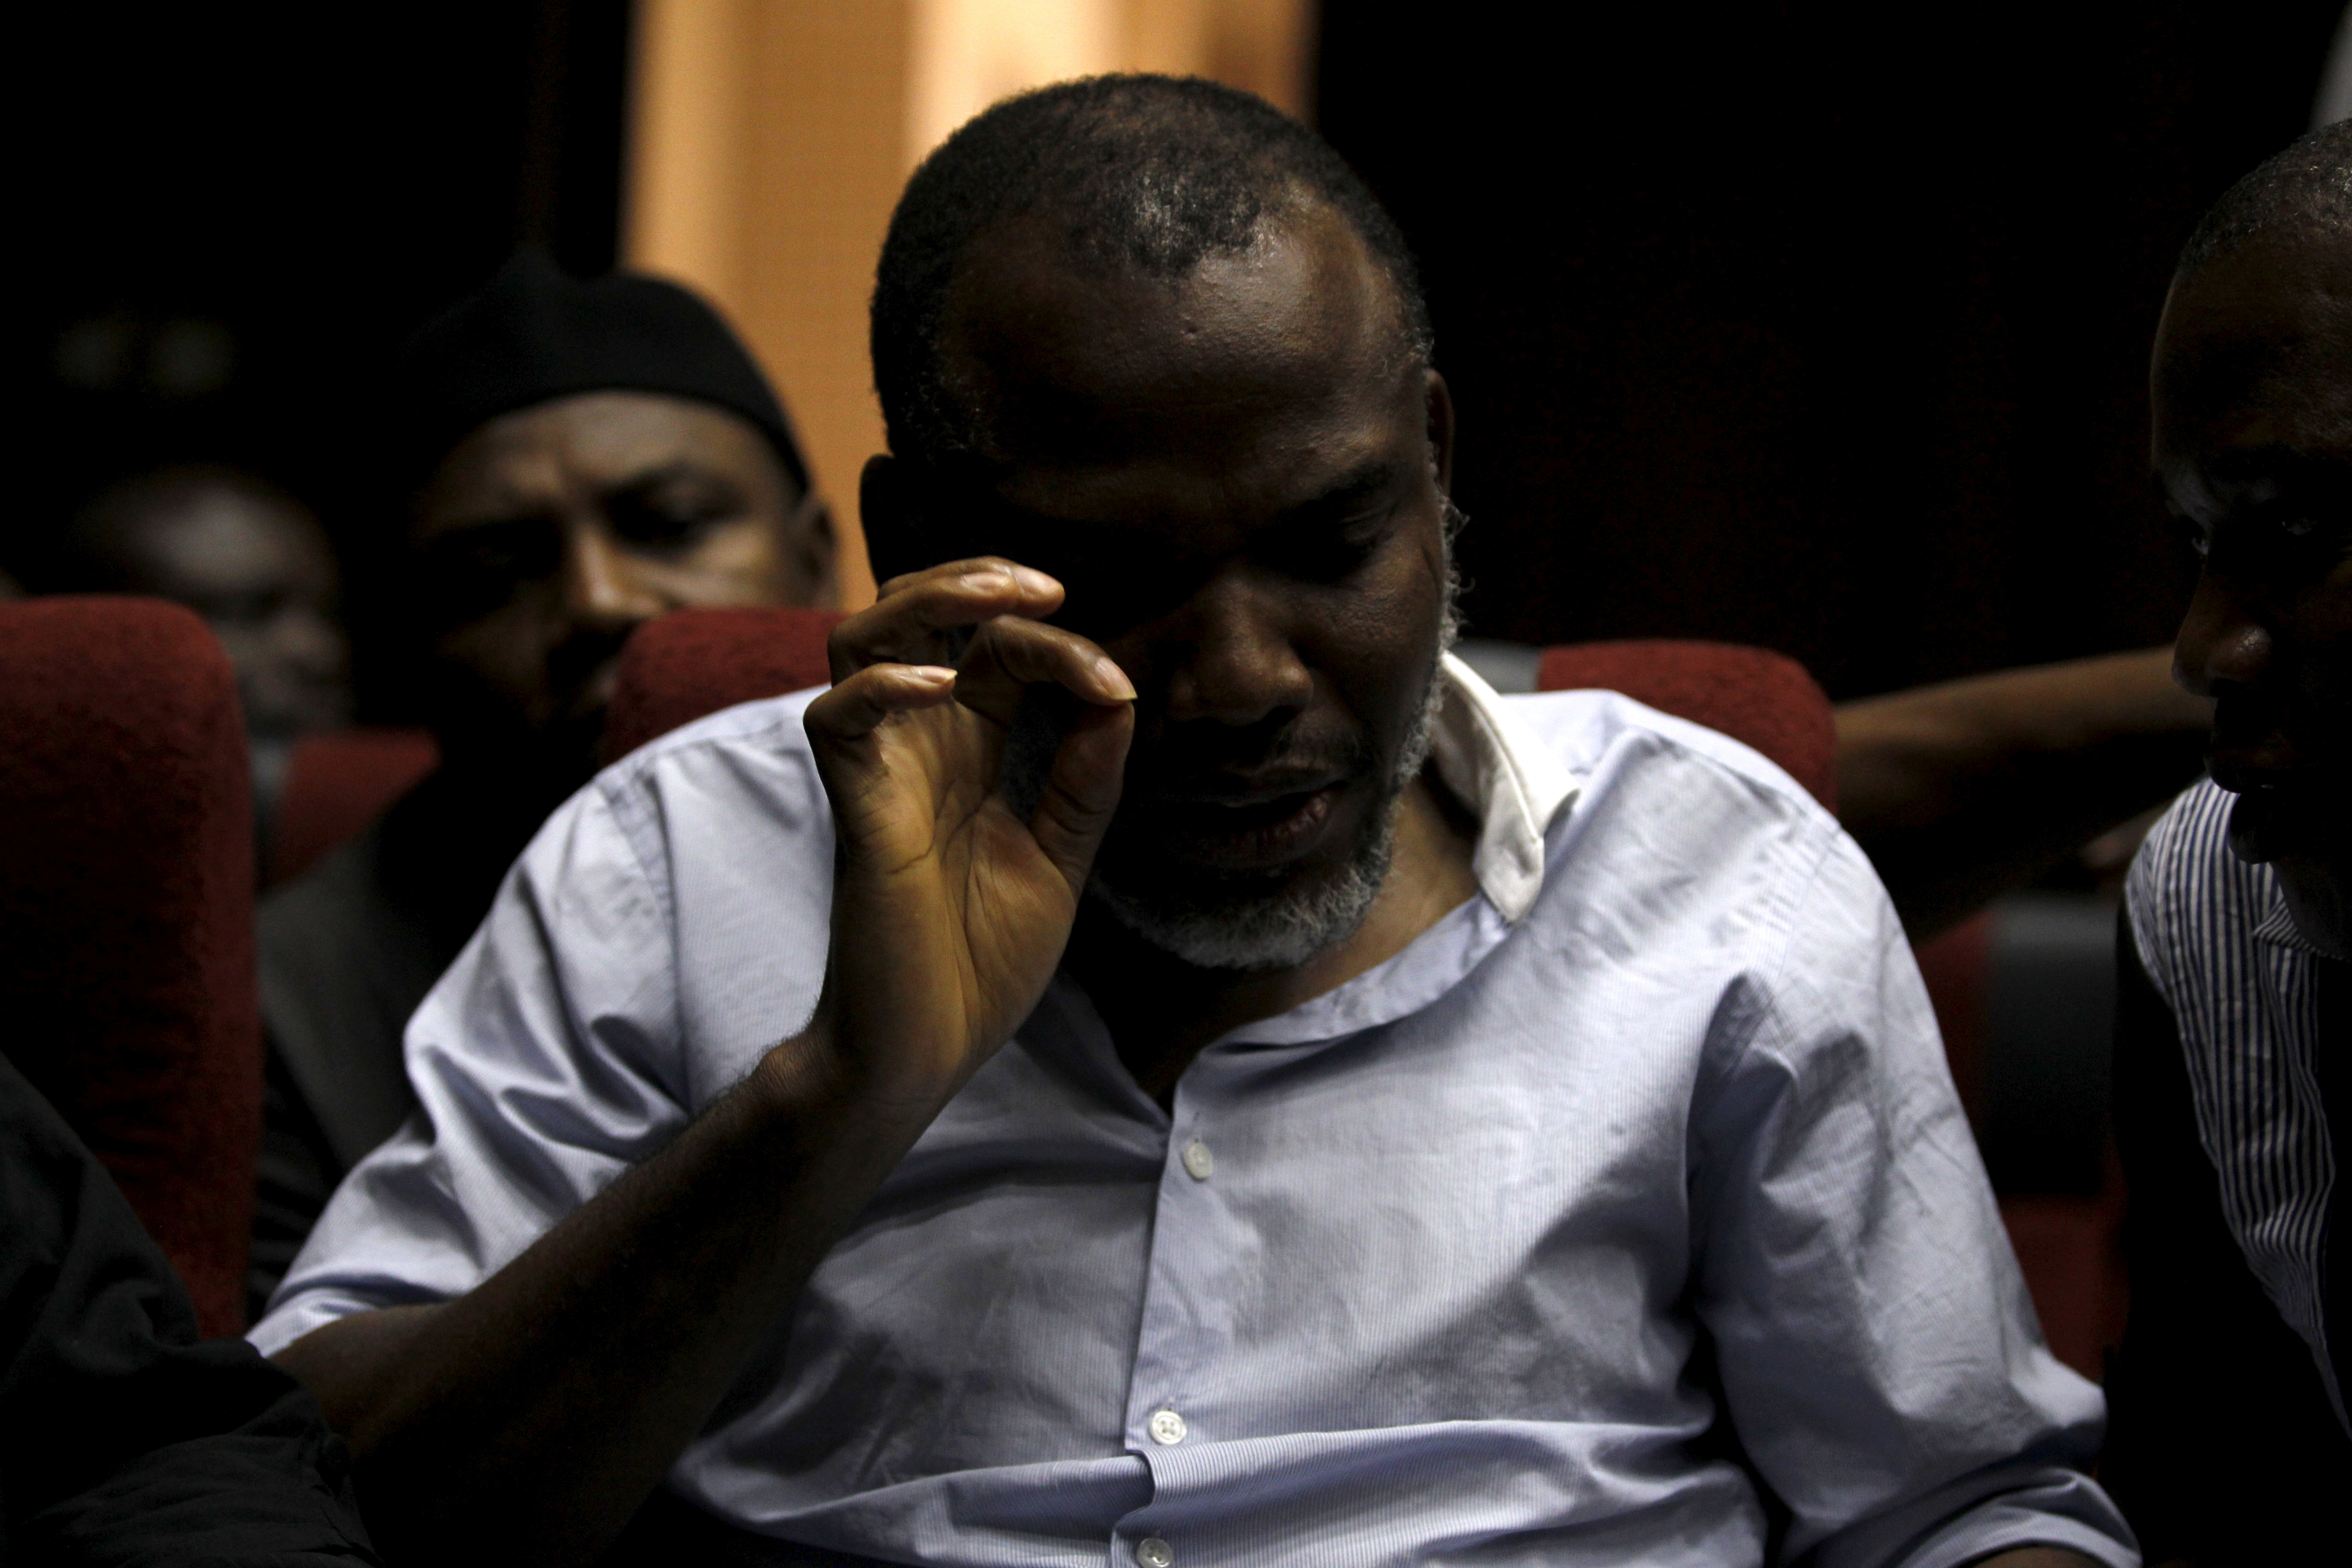 Indigenous People of Biafra (IPOB) leader Nnamdi Kanu is seen at the Federal high court Abuja, Nigeria January 20, 2016.  REUTERS/Afolabi Sotunde/File Photo